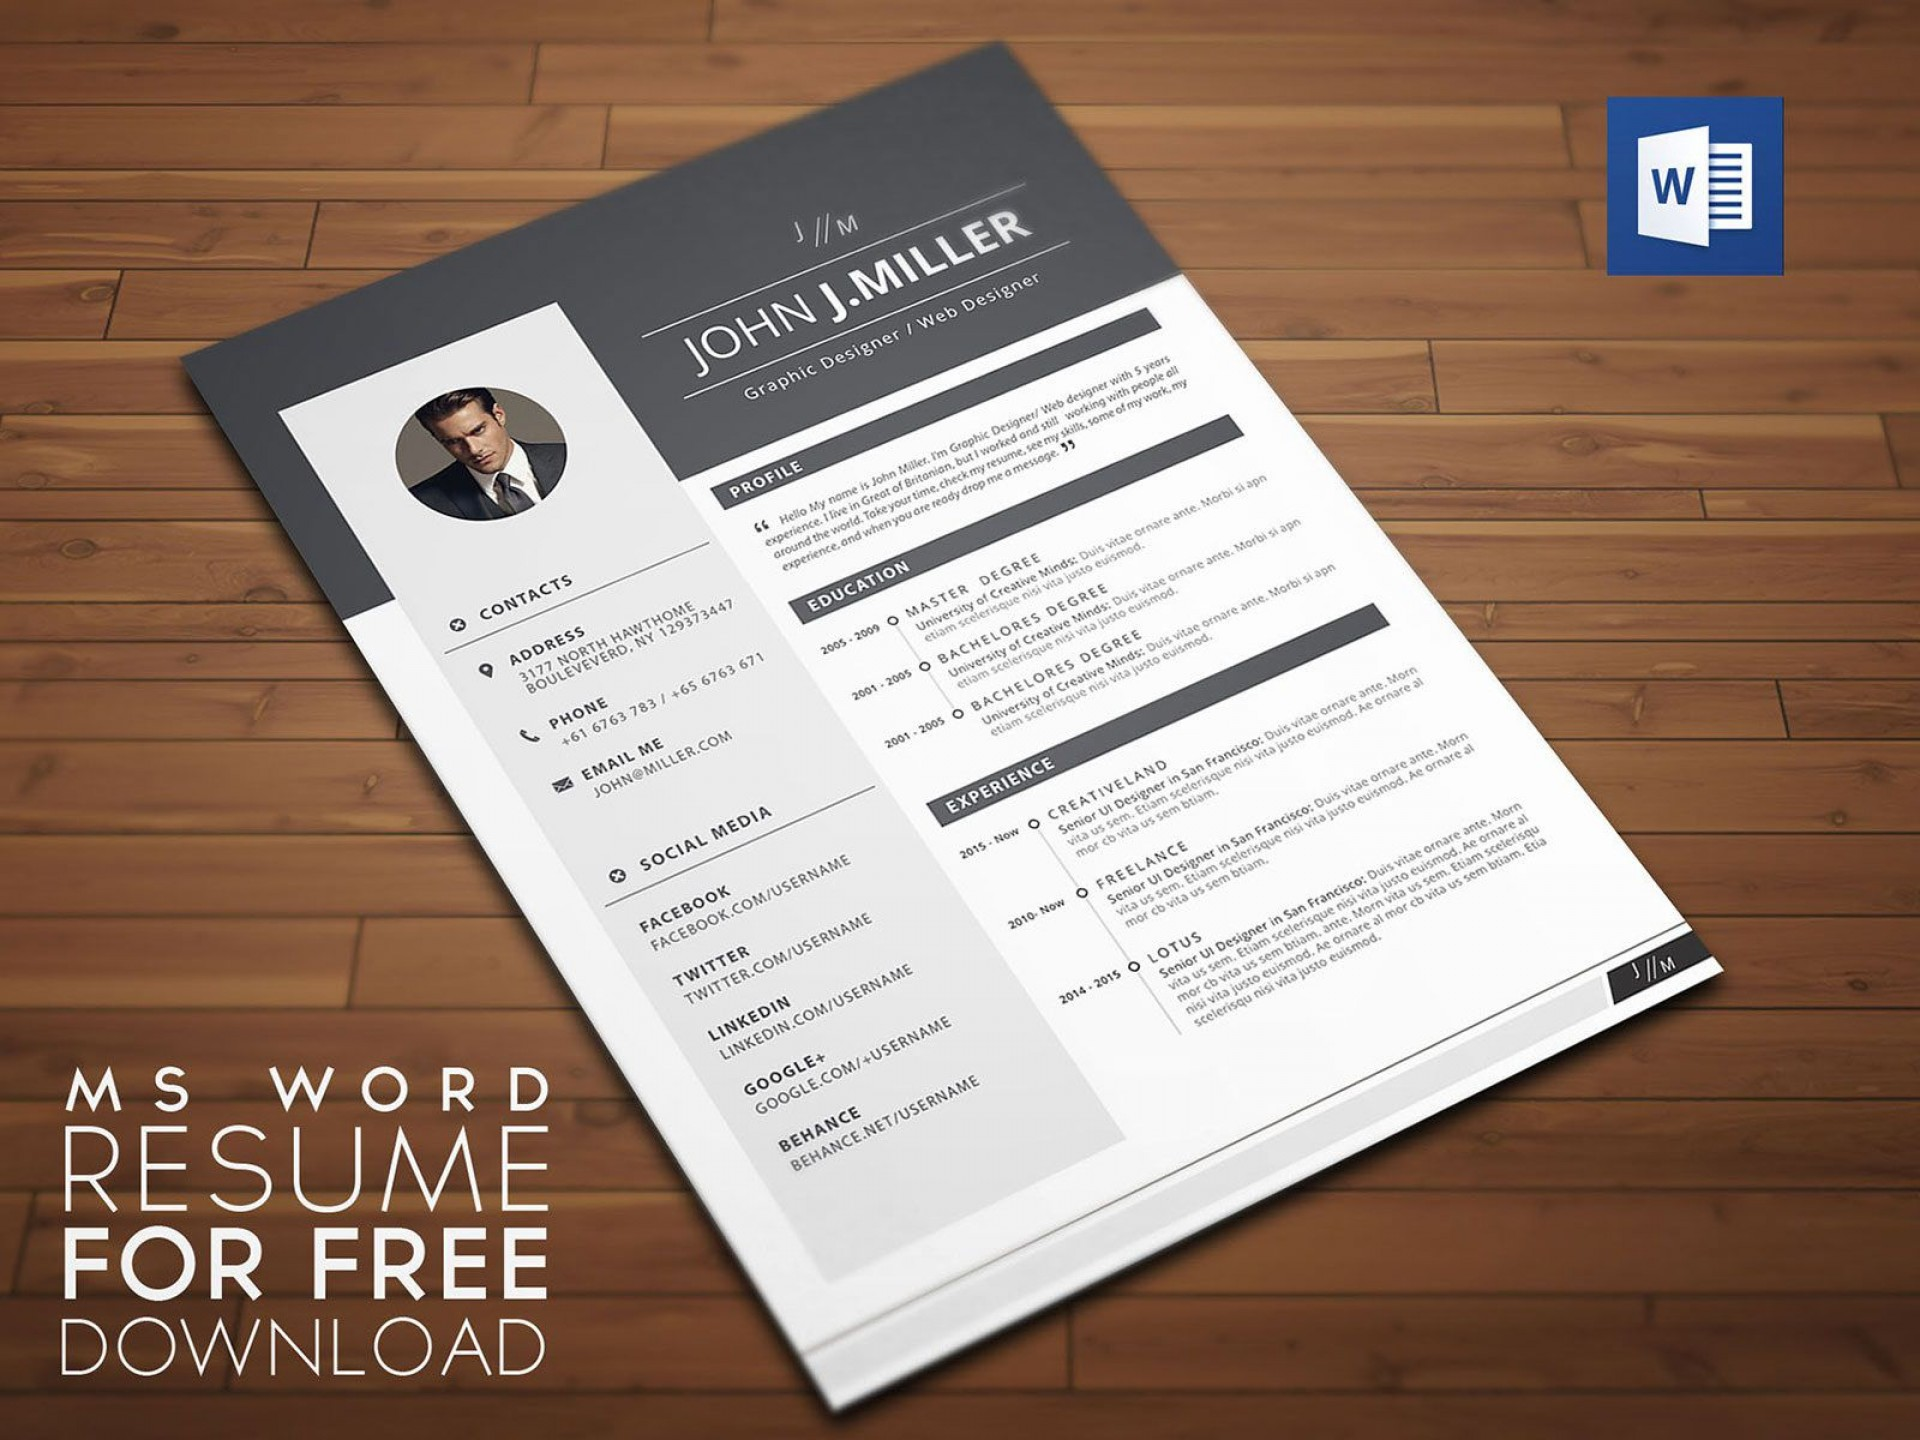 005 Unusual M Word Template Download Photo  Ms Microsoft Checklist Free Certificate Crossword1920